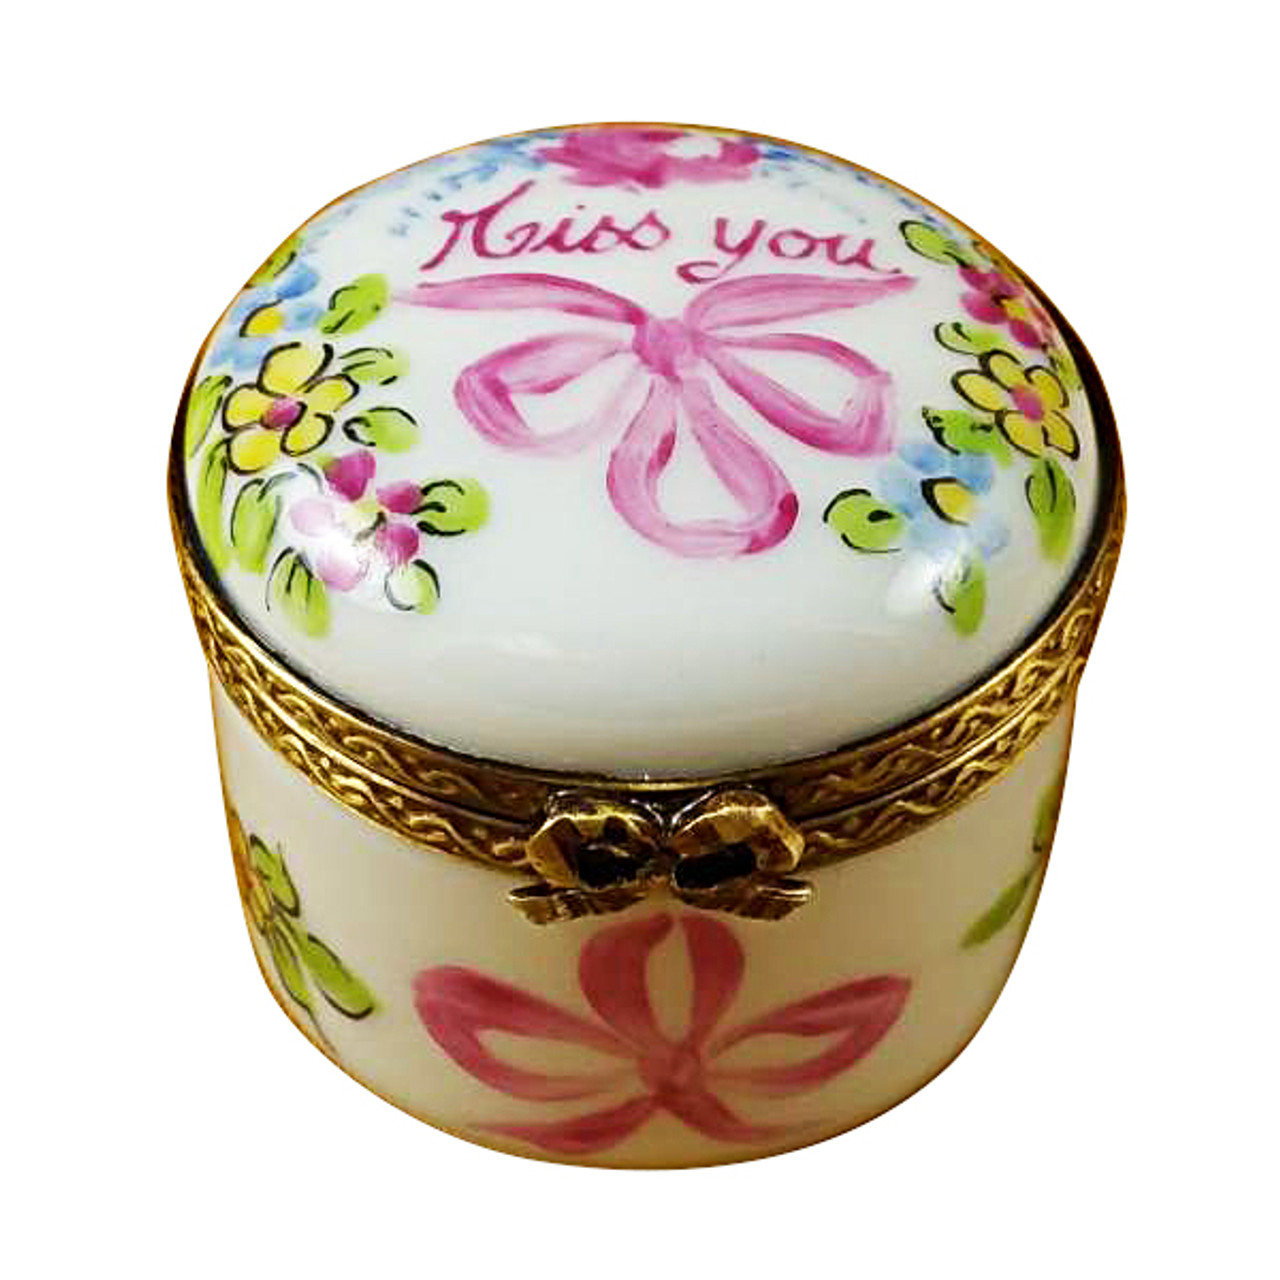 Limoges Imports Miss You Limoges Box